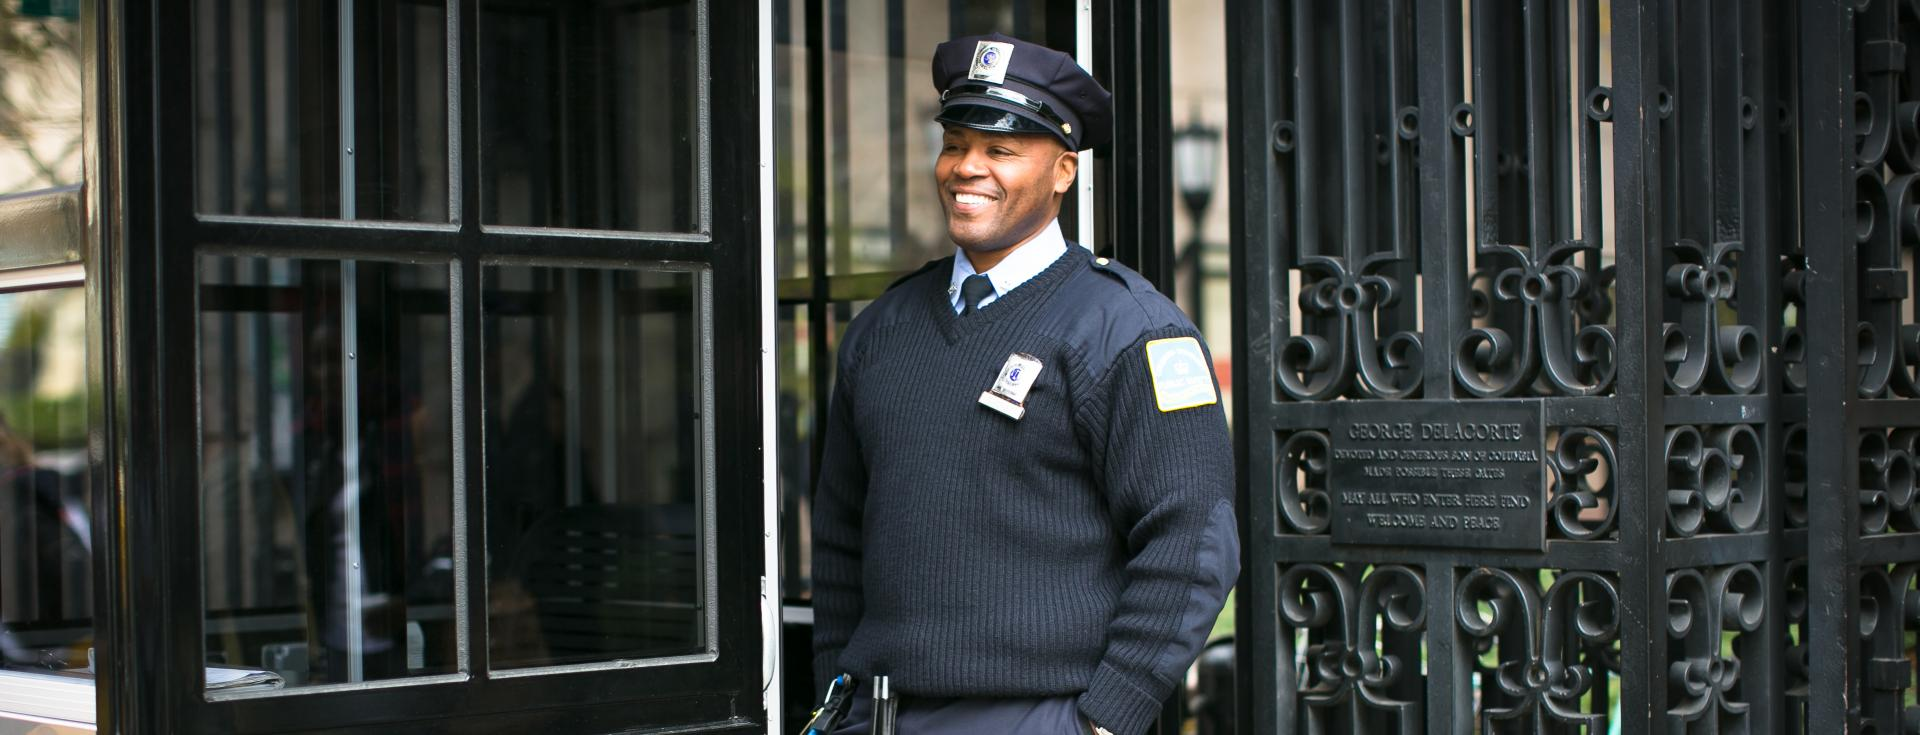 Public Safety officer at guard gate